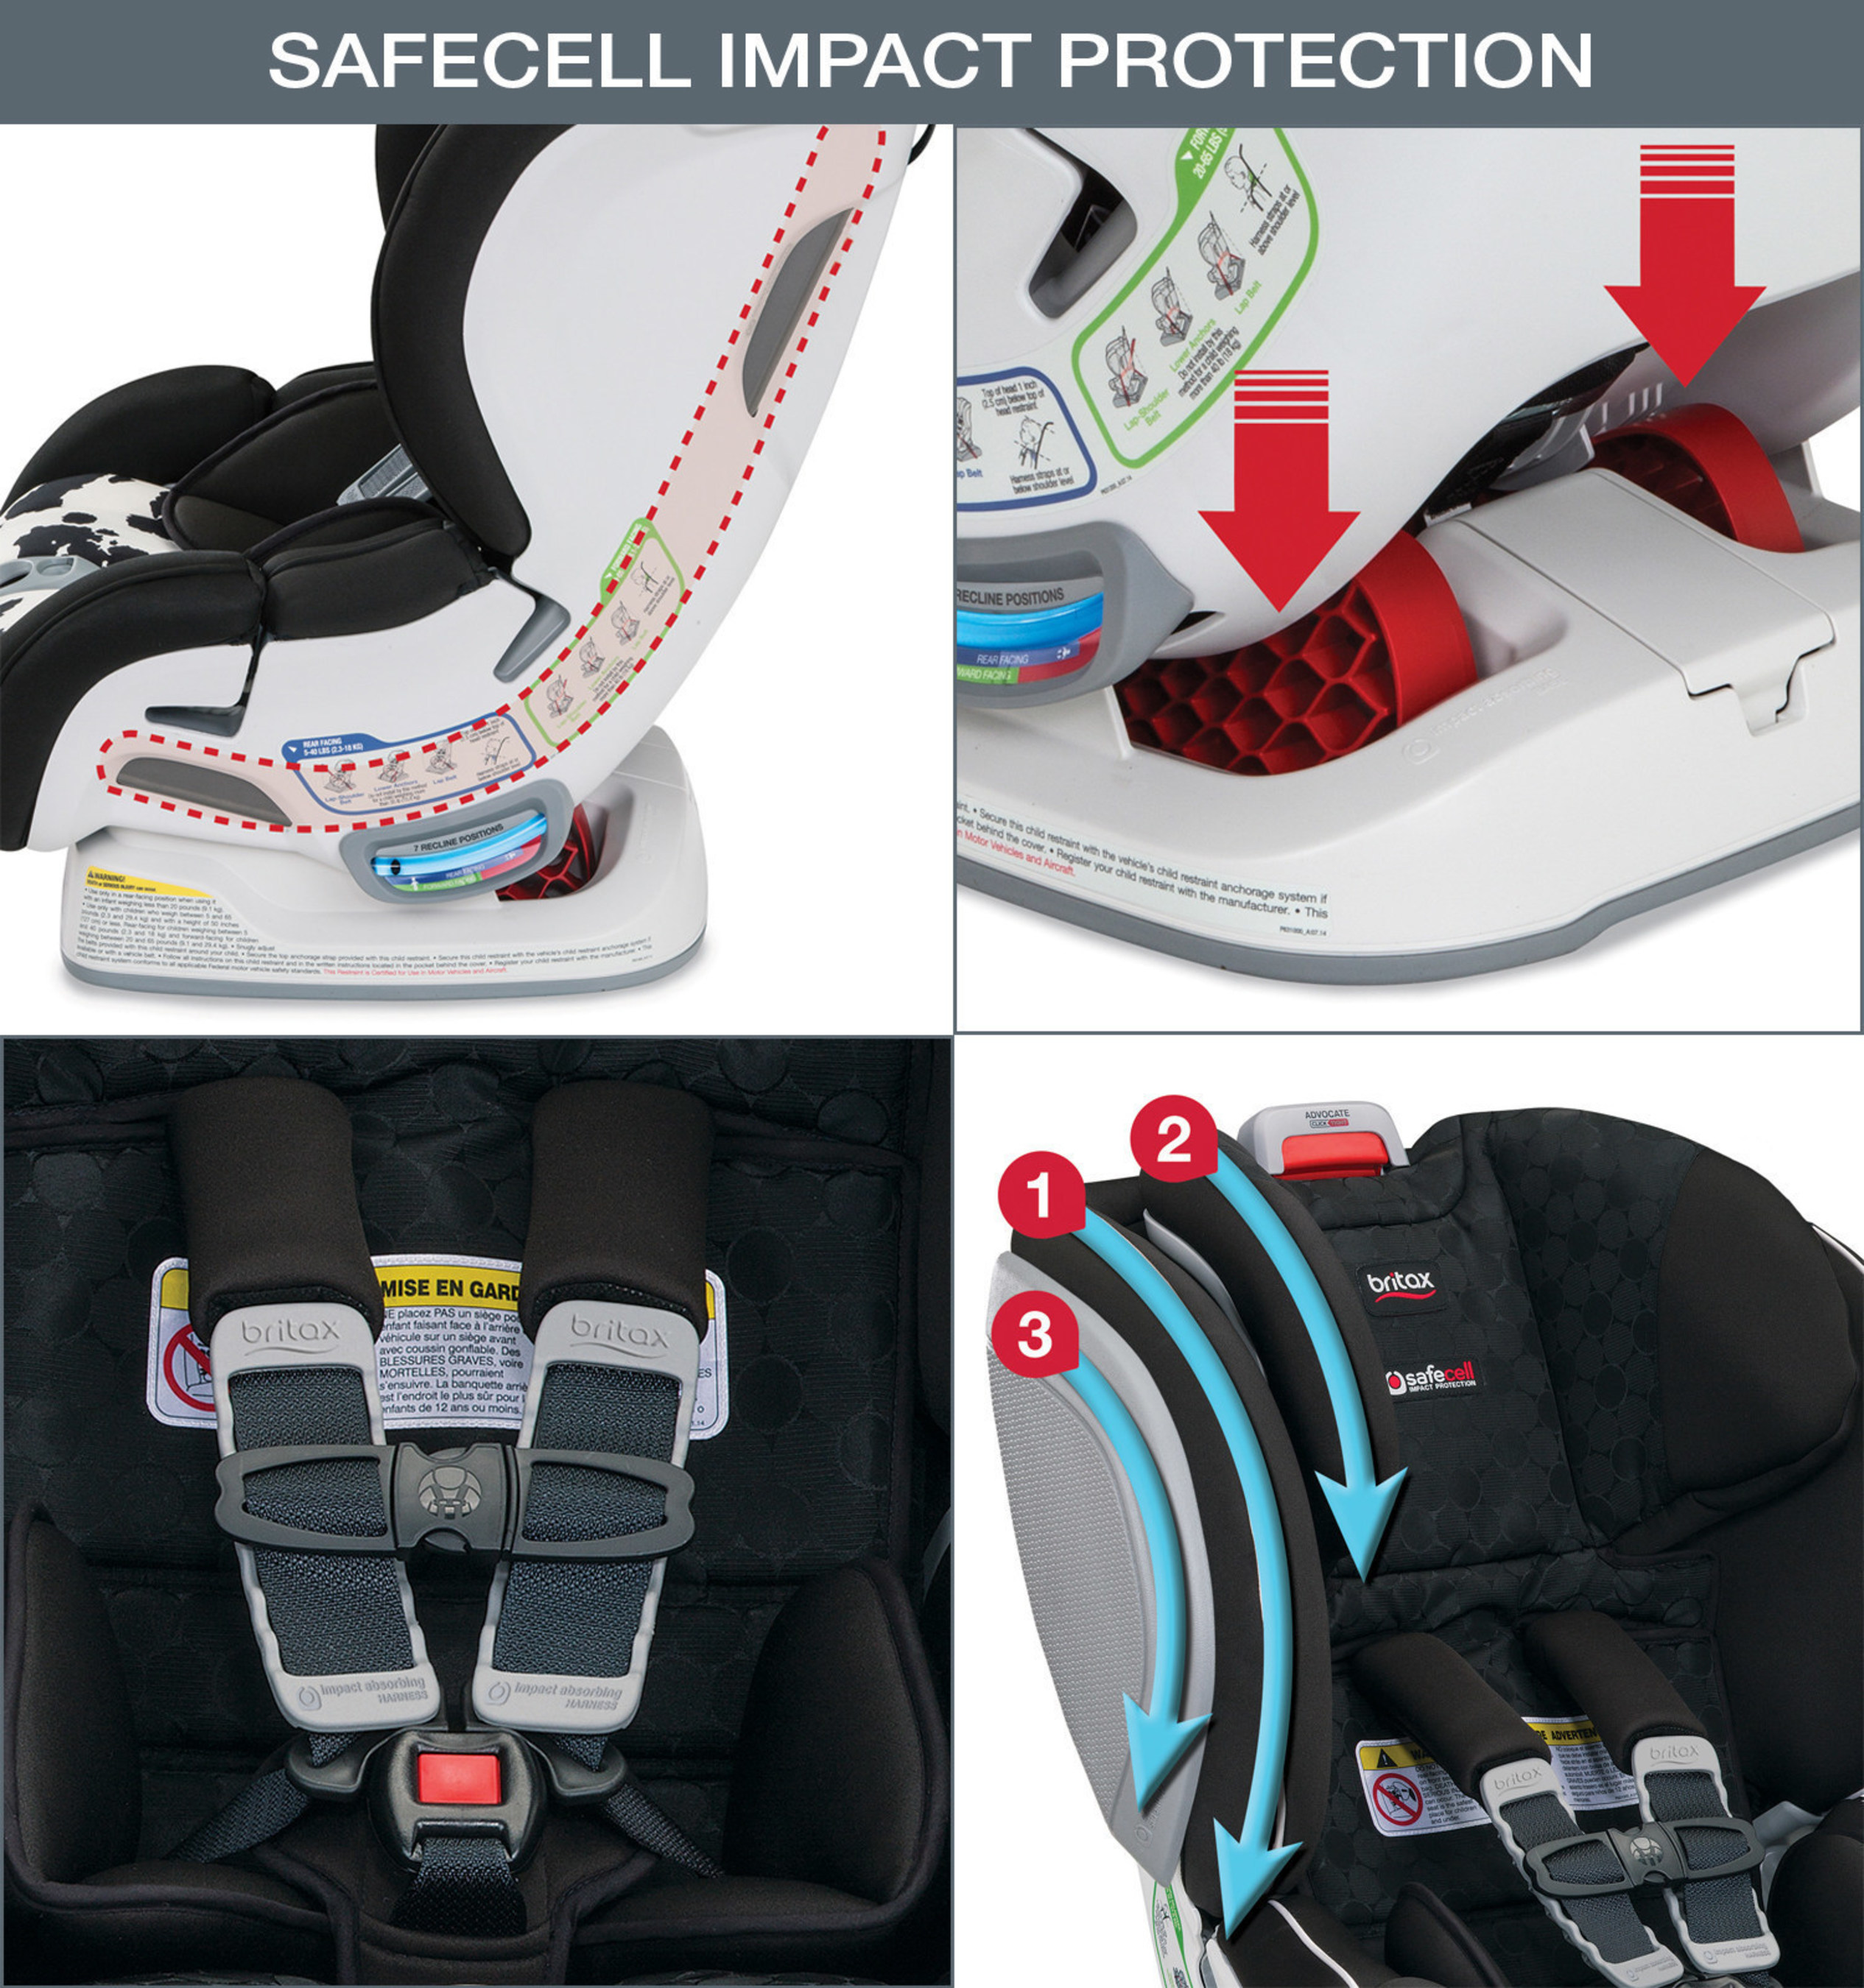 All Britax car seats exclusively feature SafeCell Impact Protection, a system of patented features that work together to lower your child's center of gravity and minimize head excursion